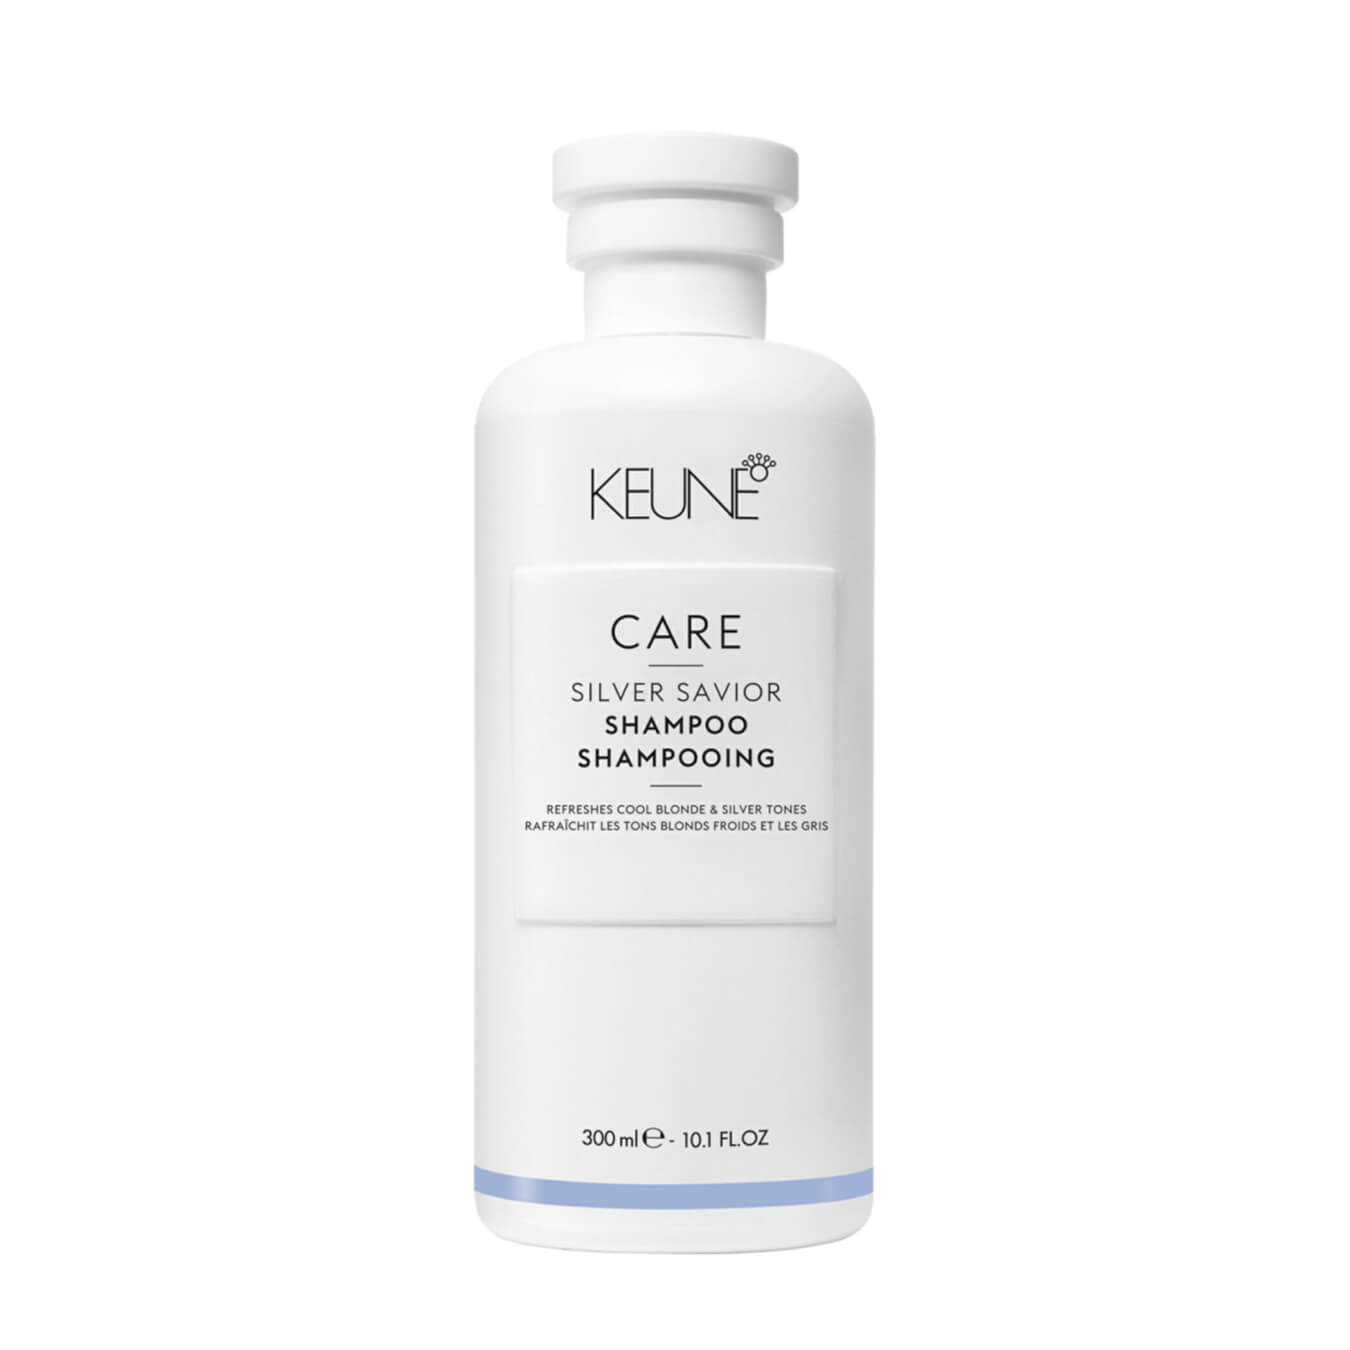 Koop Keune Care Silver Savior Shampoo 300ml